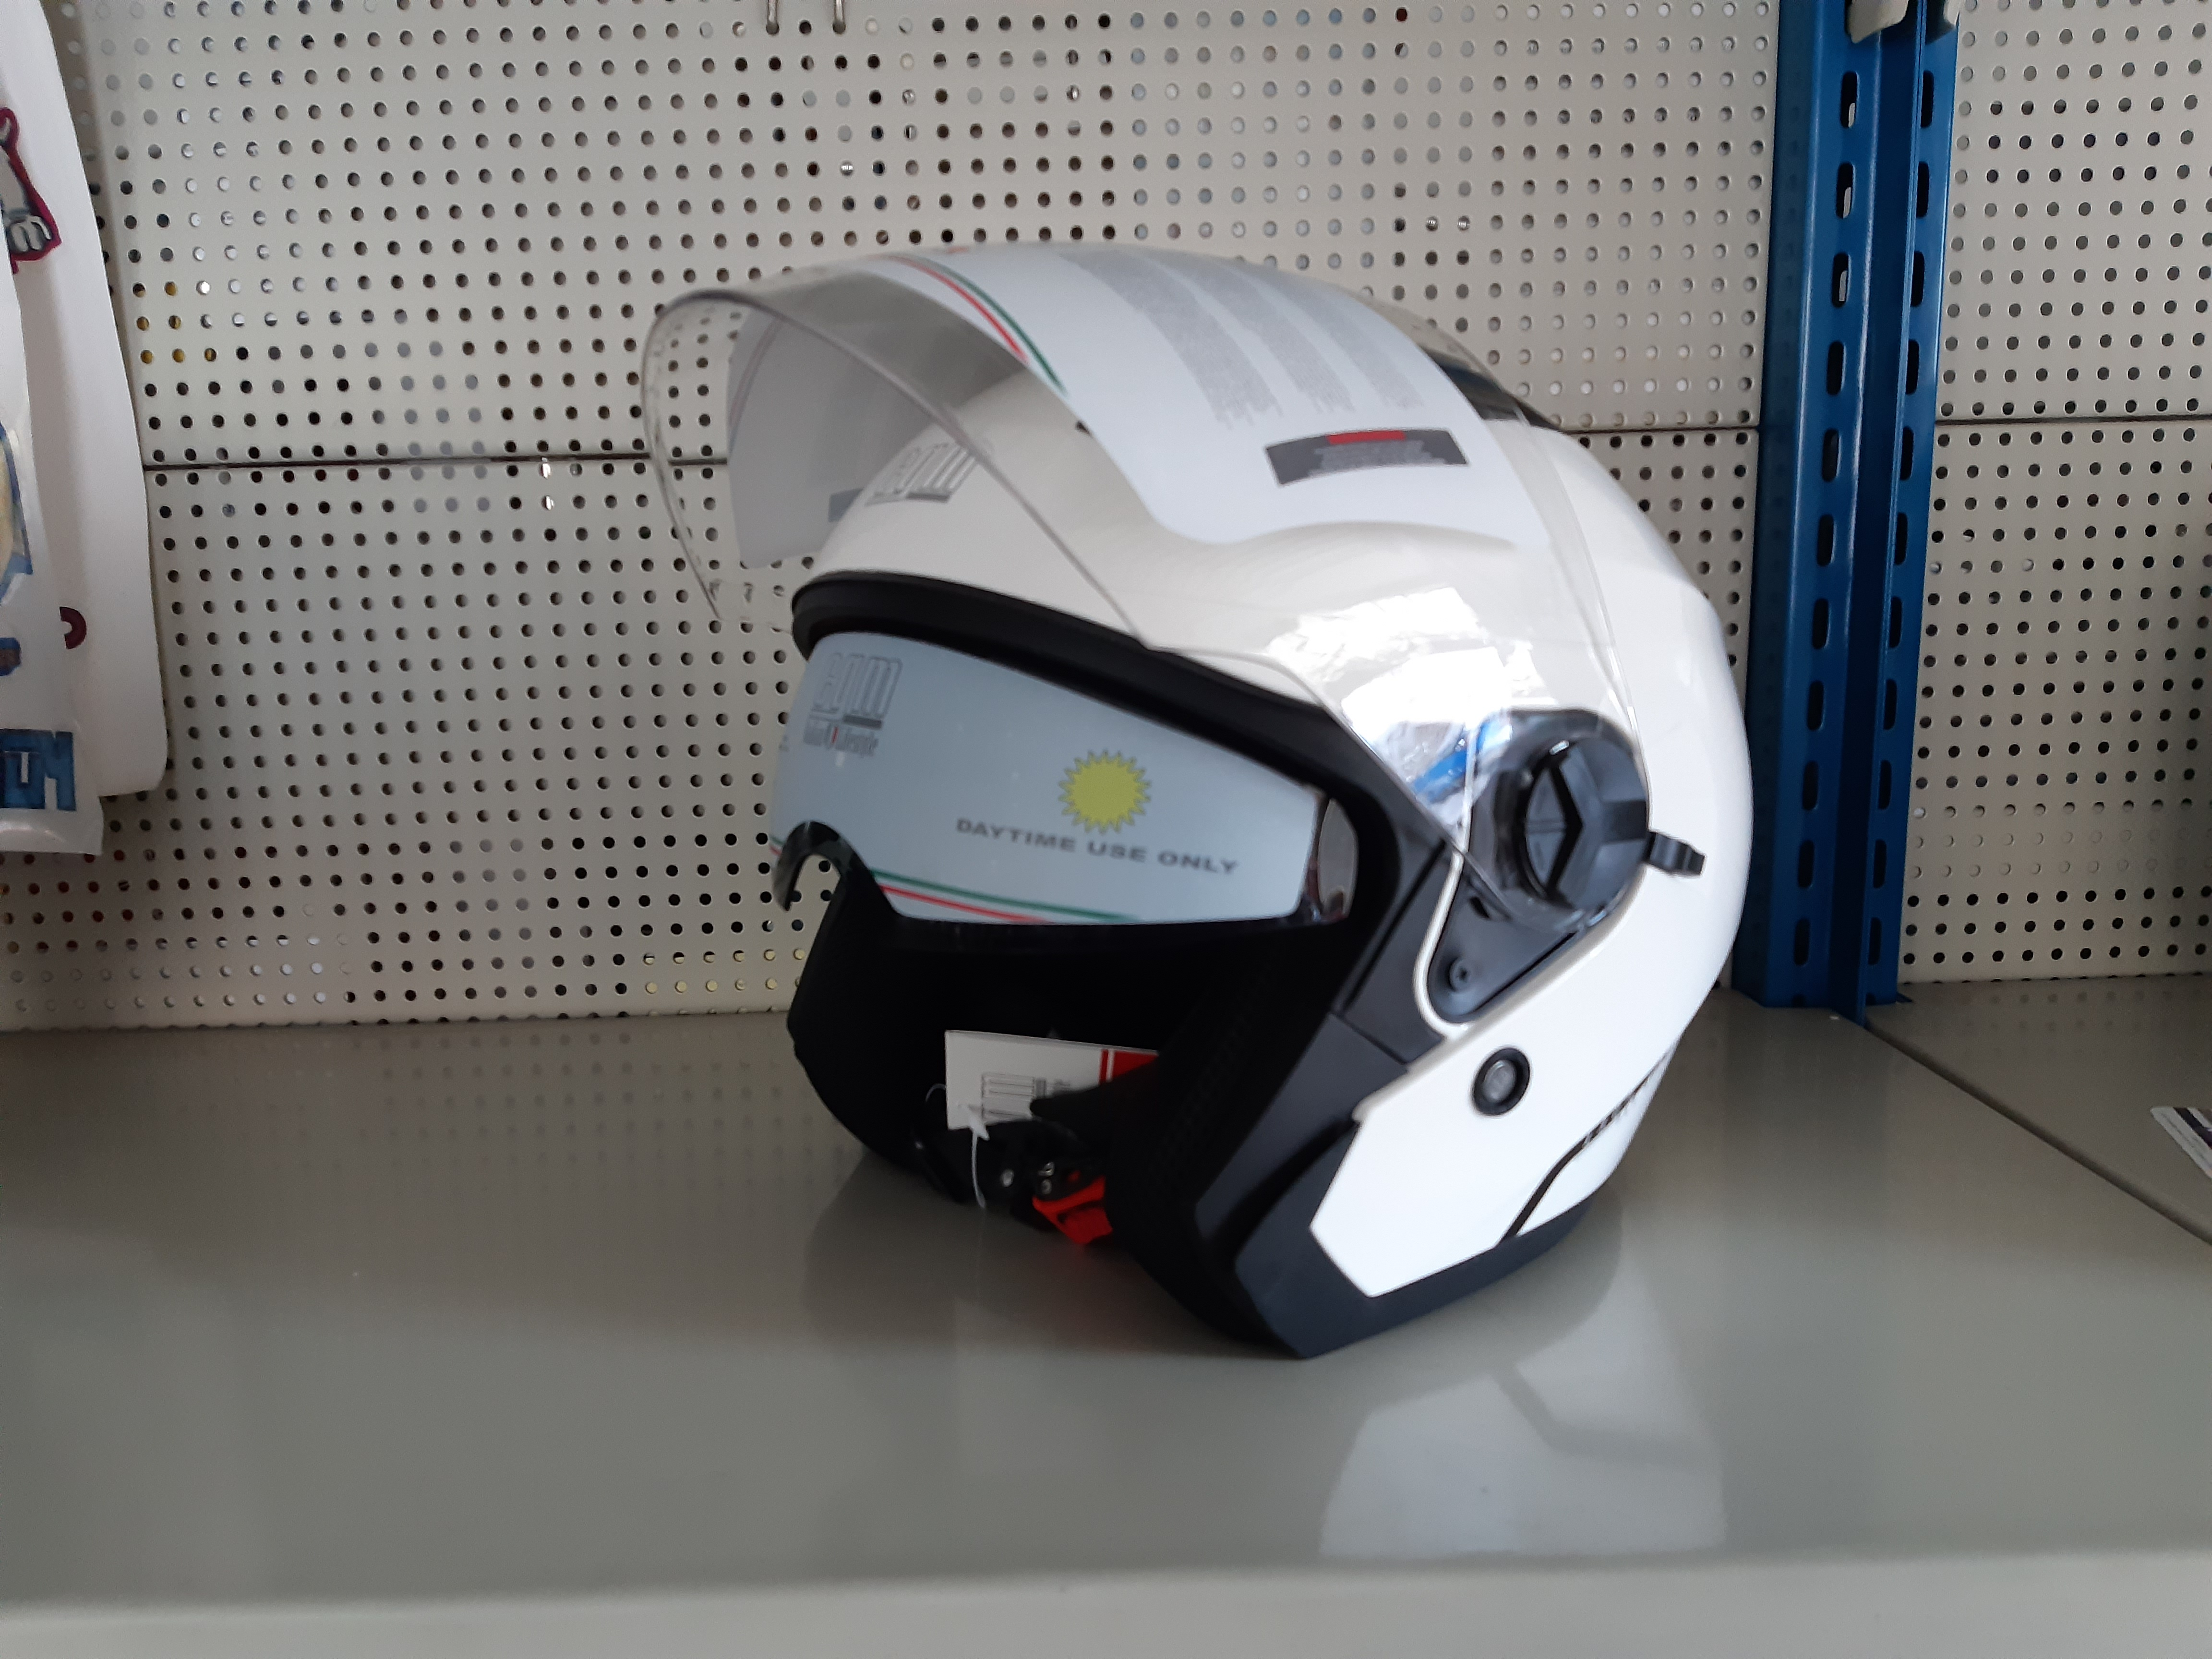 casco cgm scooter -vespa